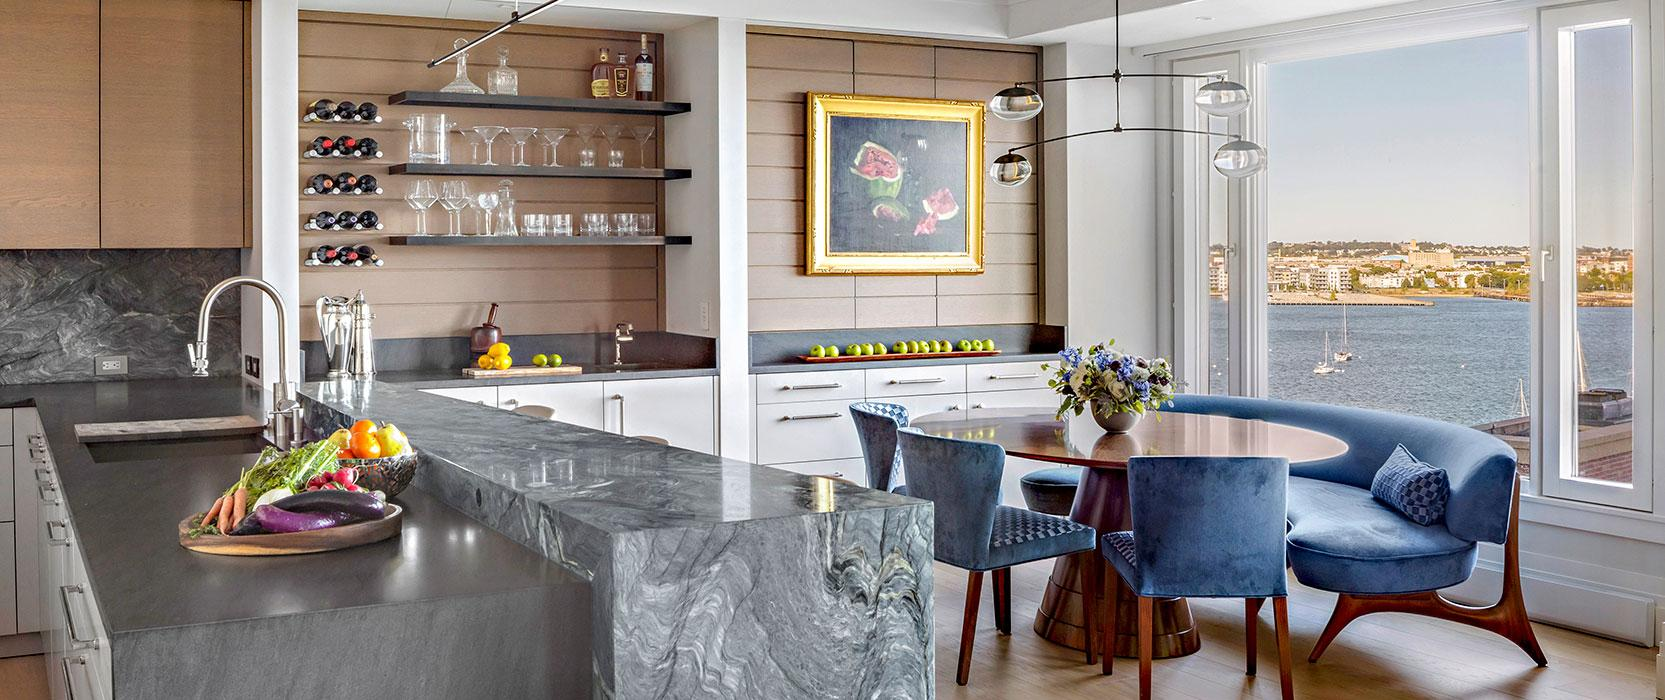 Harborside renovation by Foley Fiore Architecture and FBN Construction